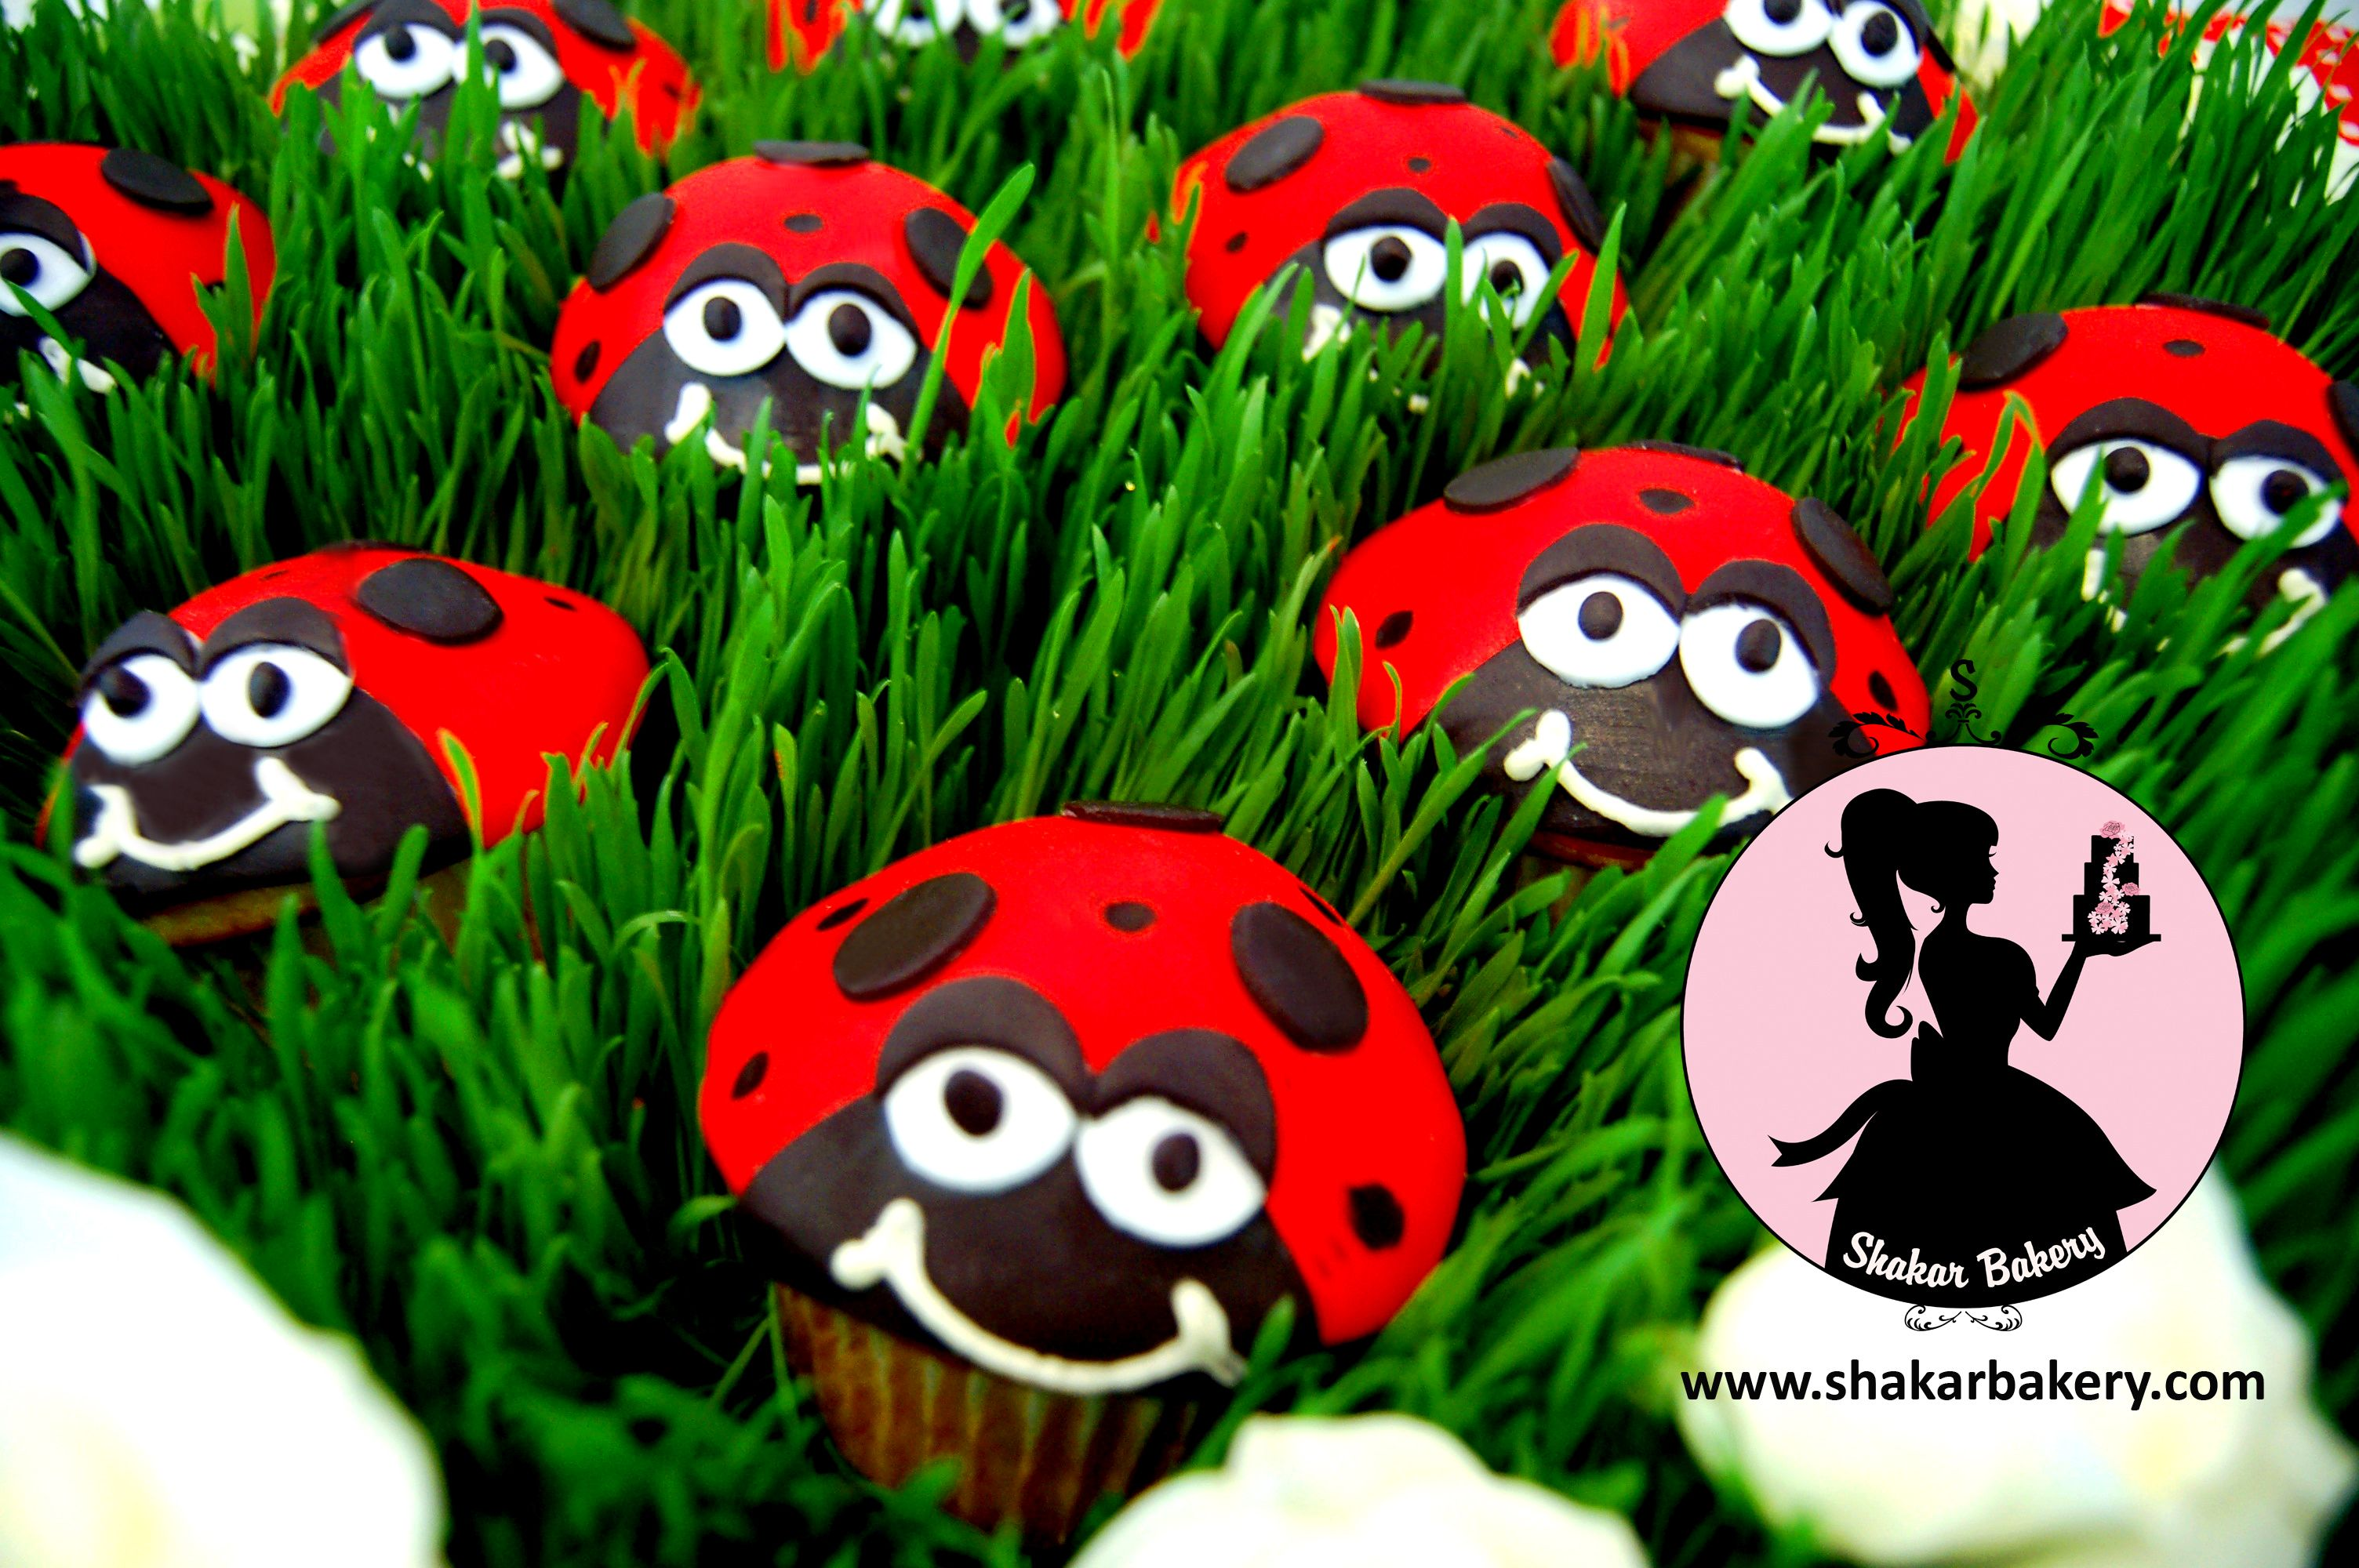 Look at this picture and tell me it didn't make you smile!! Ladybug fondant cupcakes sitting in wheat grass. This simple design touch really animated these cupcakes! These were part of the ladybug dessert table